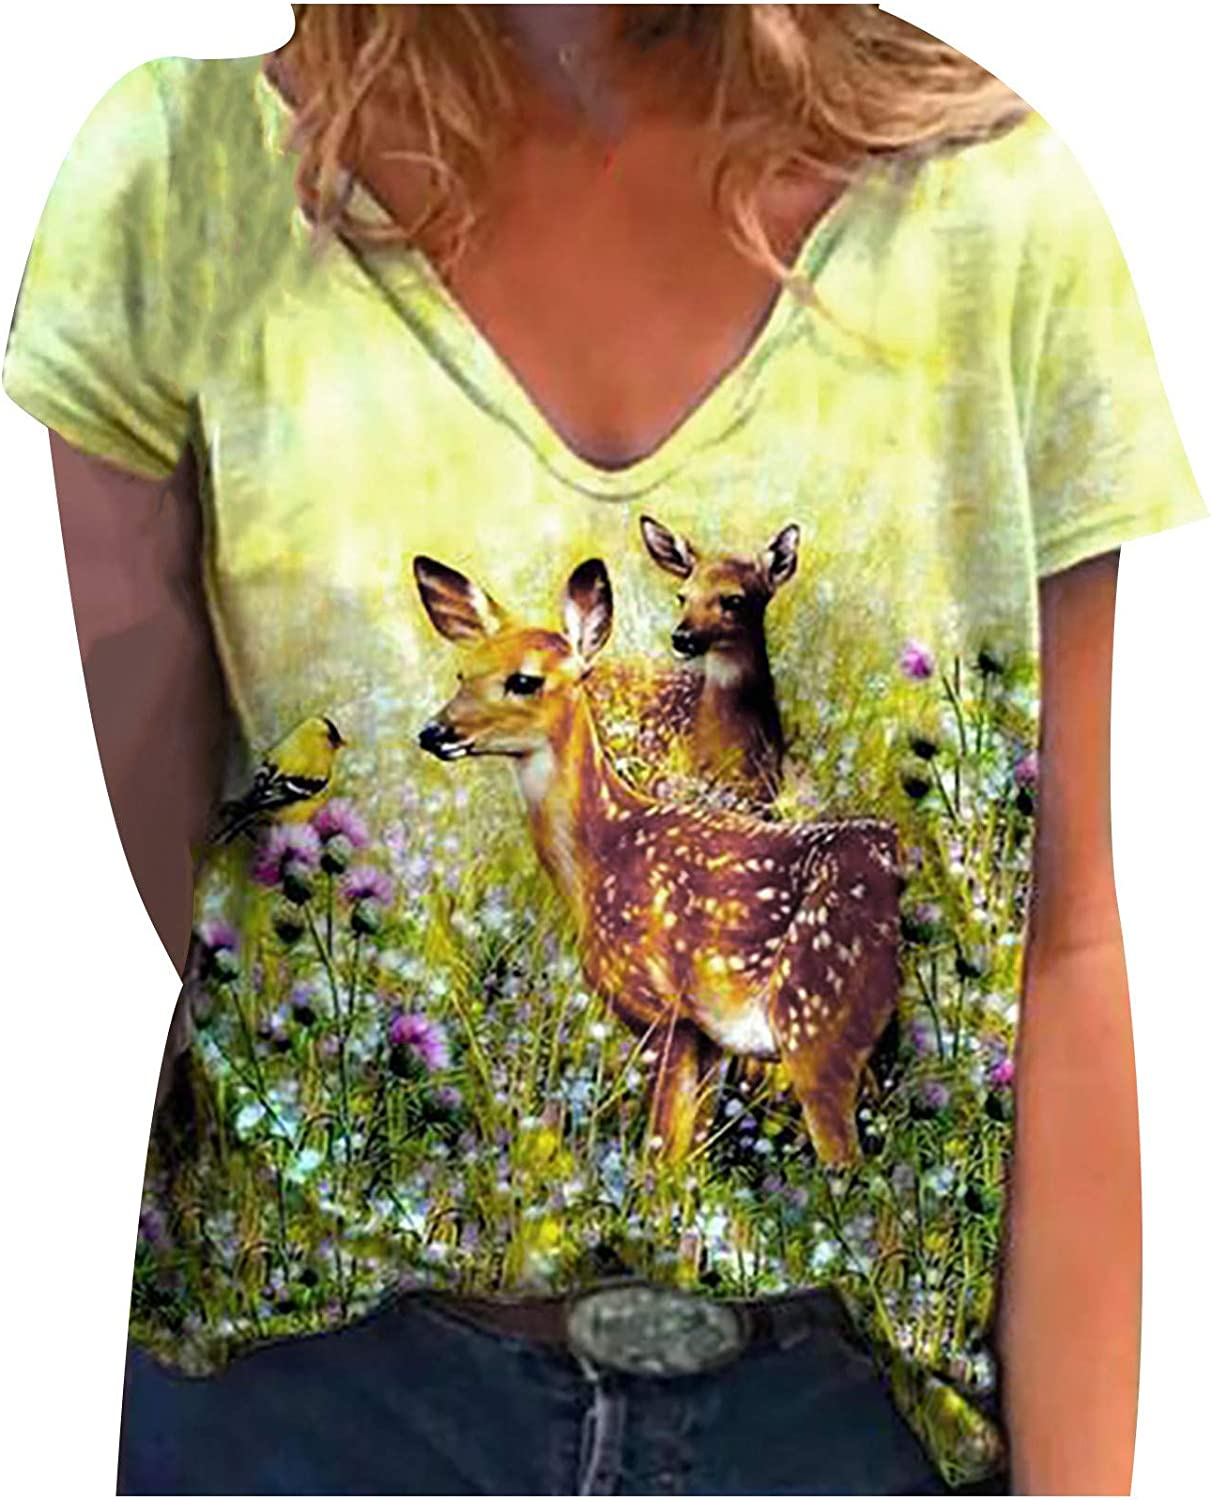 Womens Cute Animal T Shirts Summer Causal Short Sleeve Graphic Tee V-Neck Loose Fit Blouse Tops